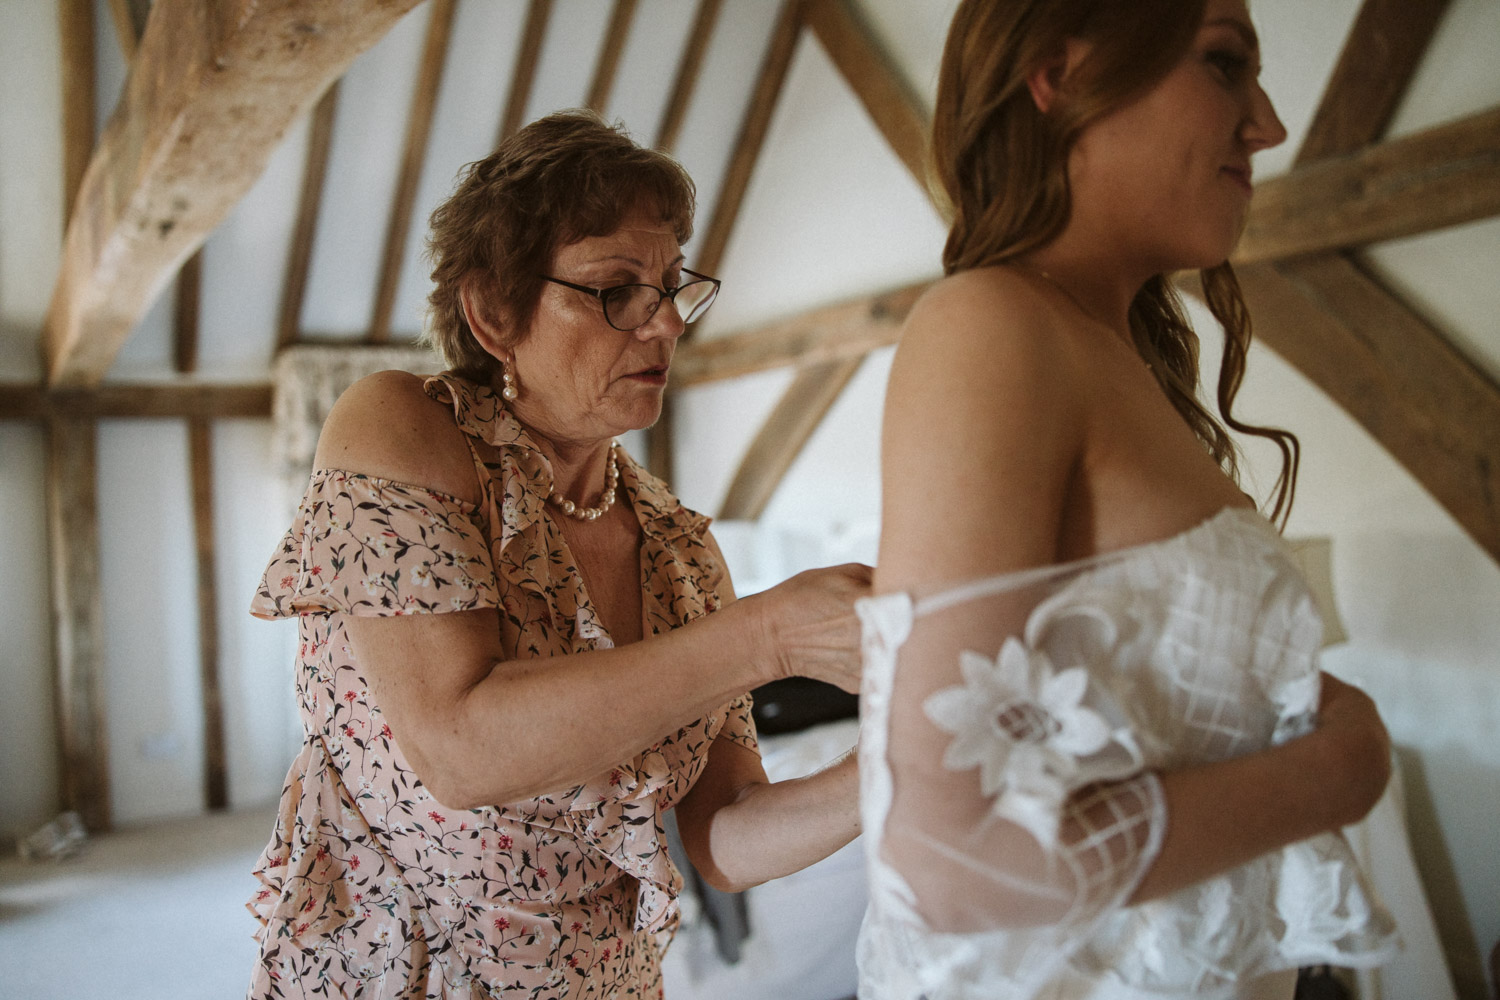 the mother dressing the bride